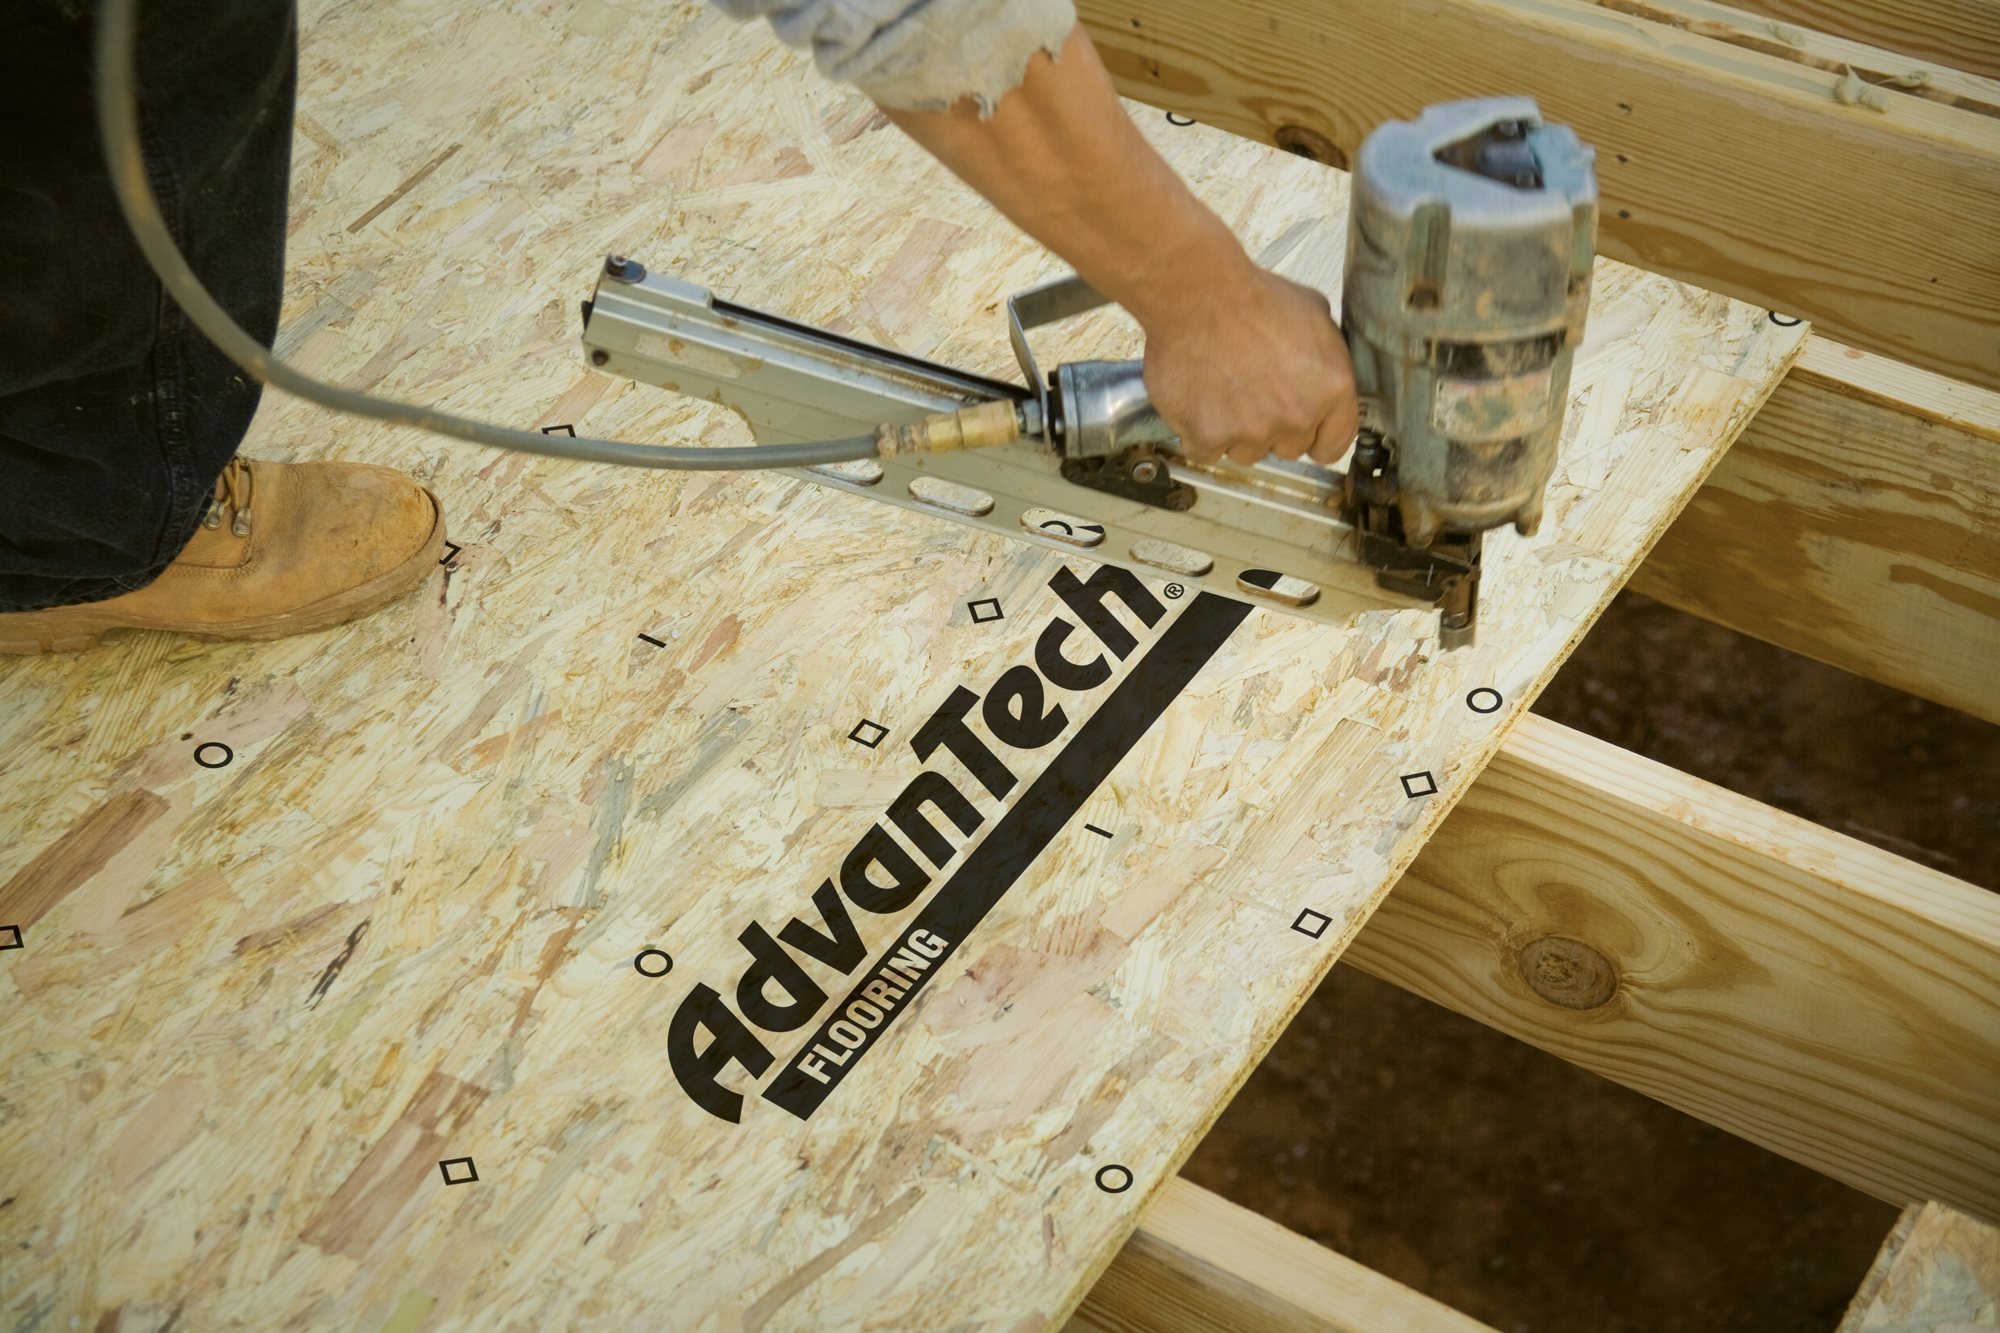 Advantech 174 Flooring And Sheathing Introduces New Best In